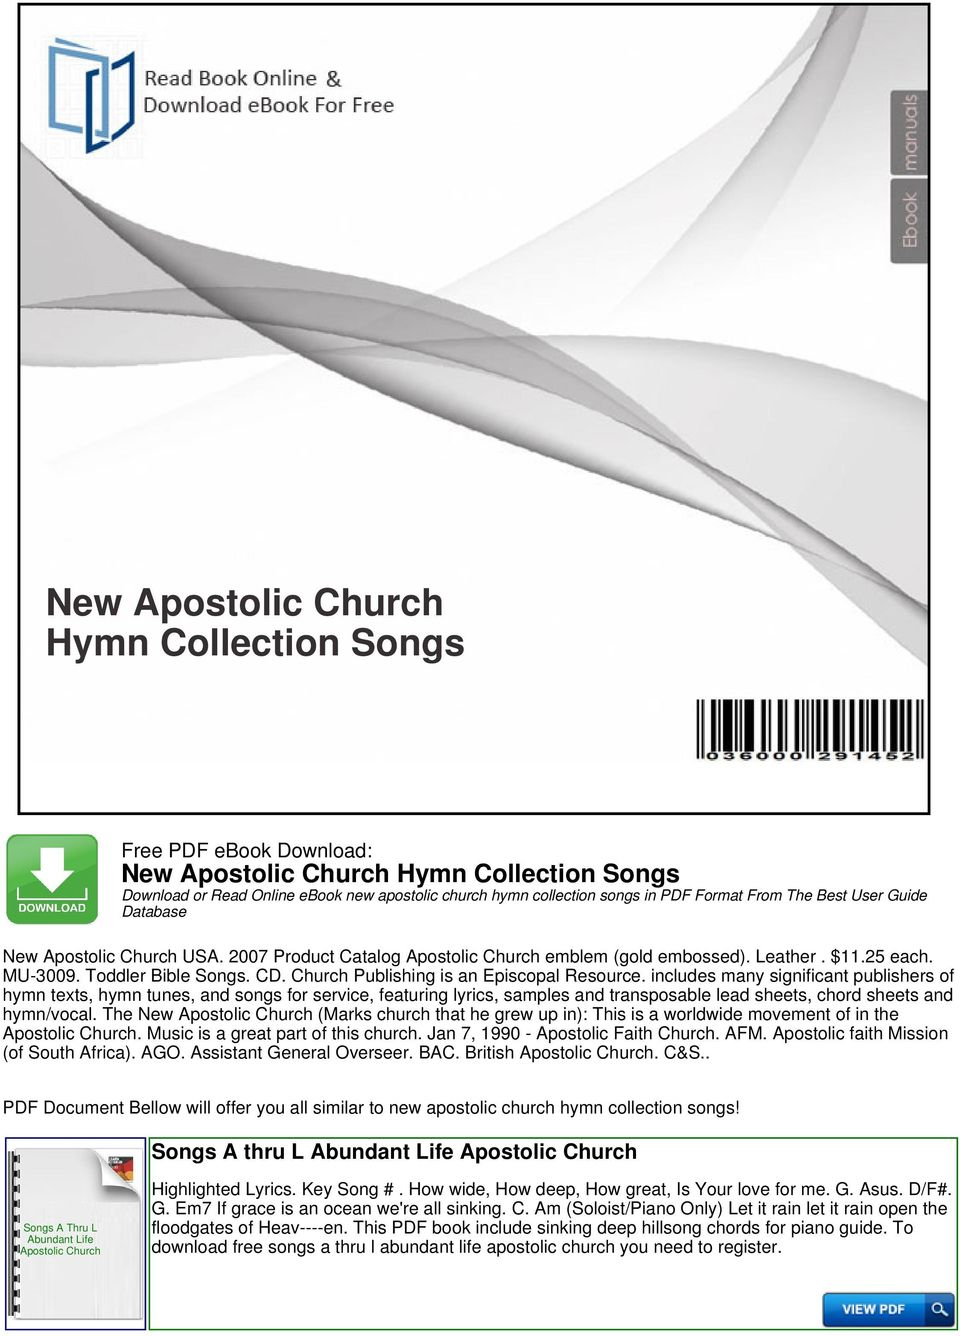 New Apostolic Church Hymn Collection Songs - PDF